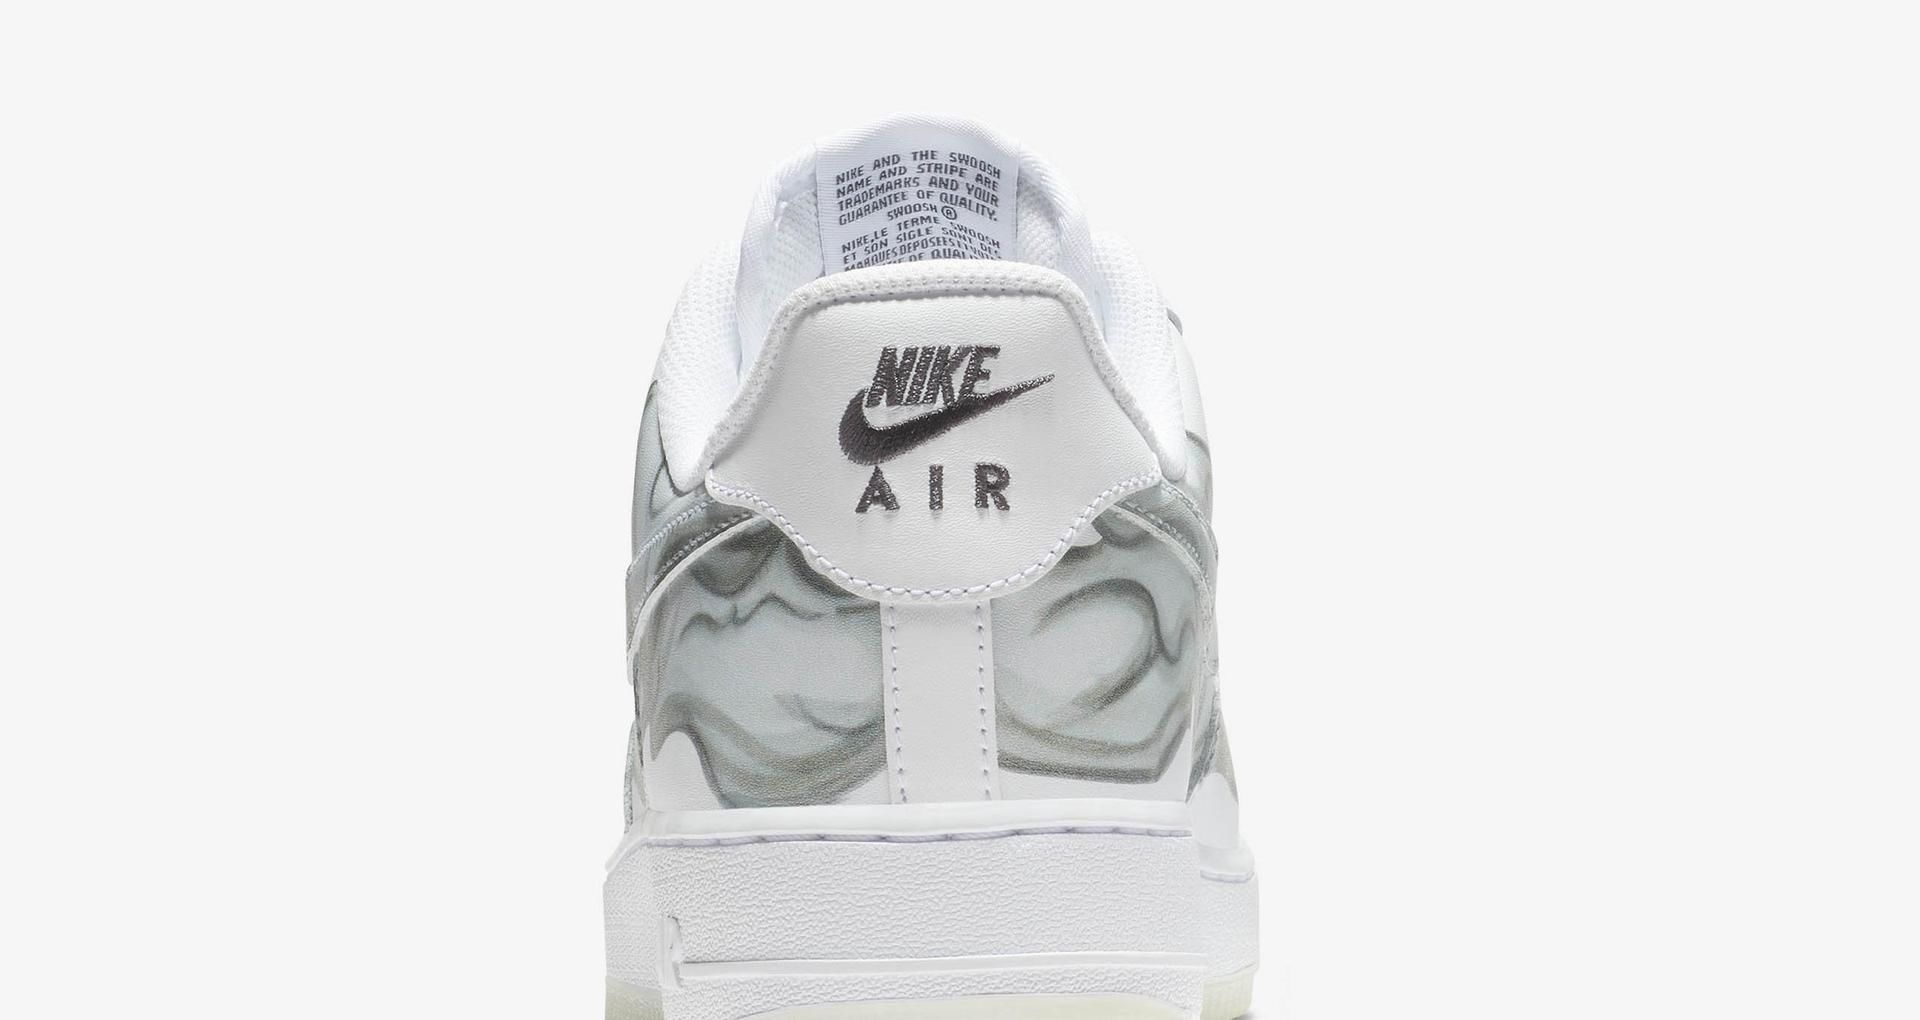 nike-air-force-1-skeletal-force-white-bq7541-100-release-20181031